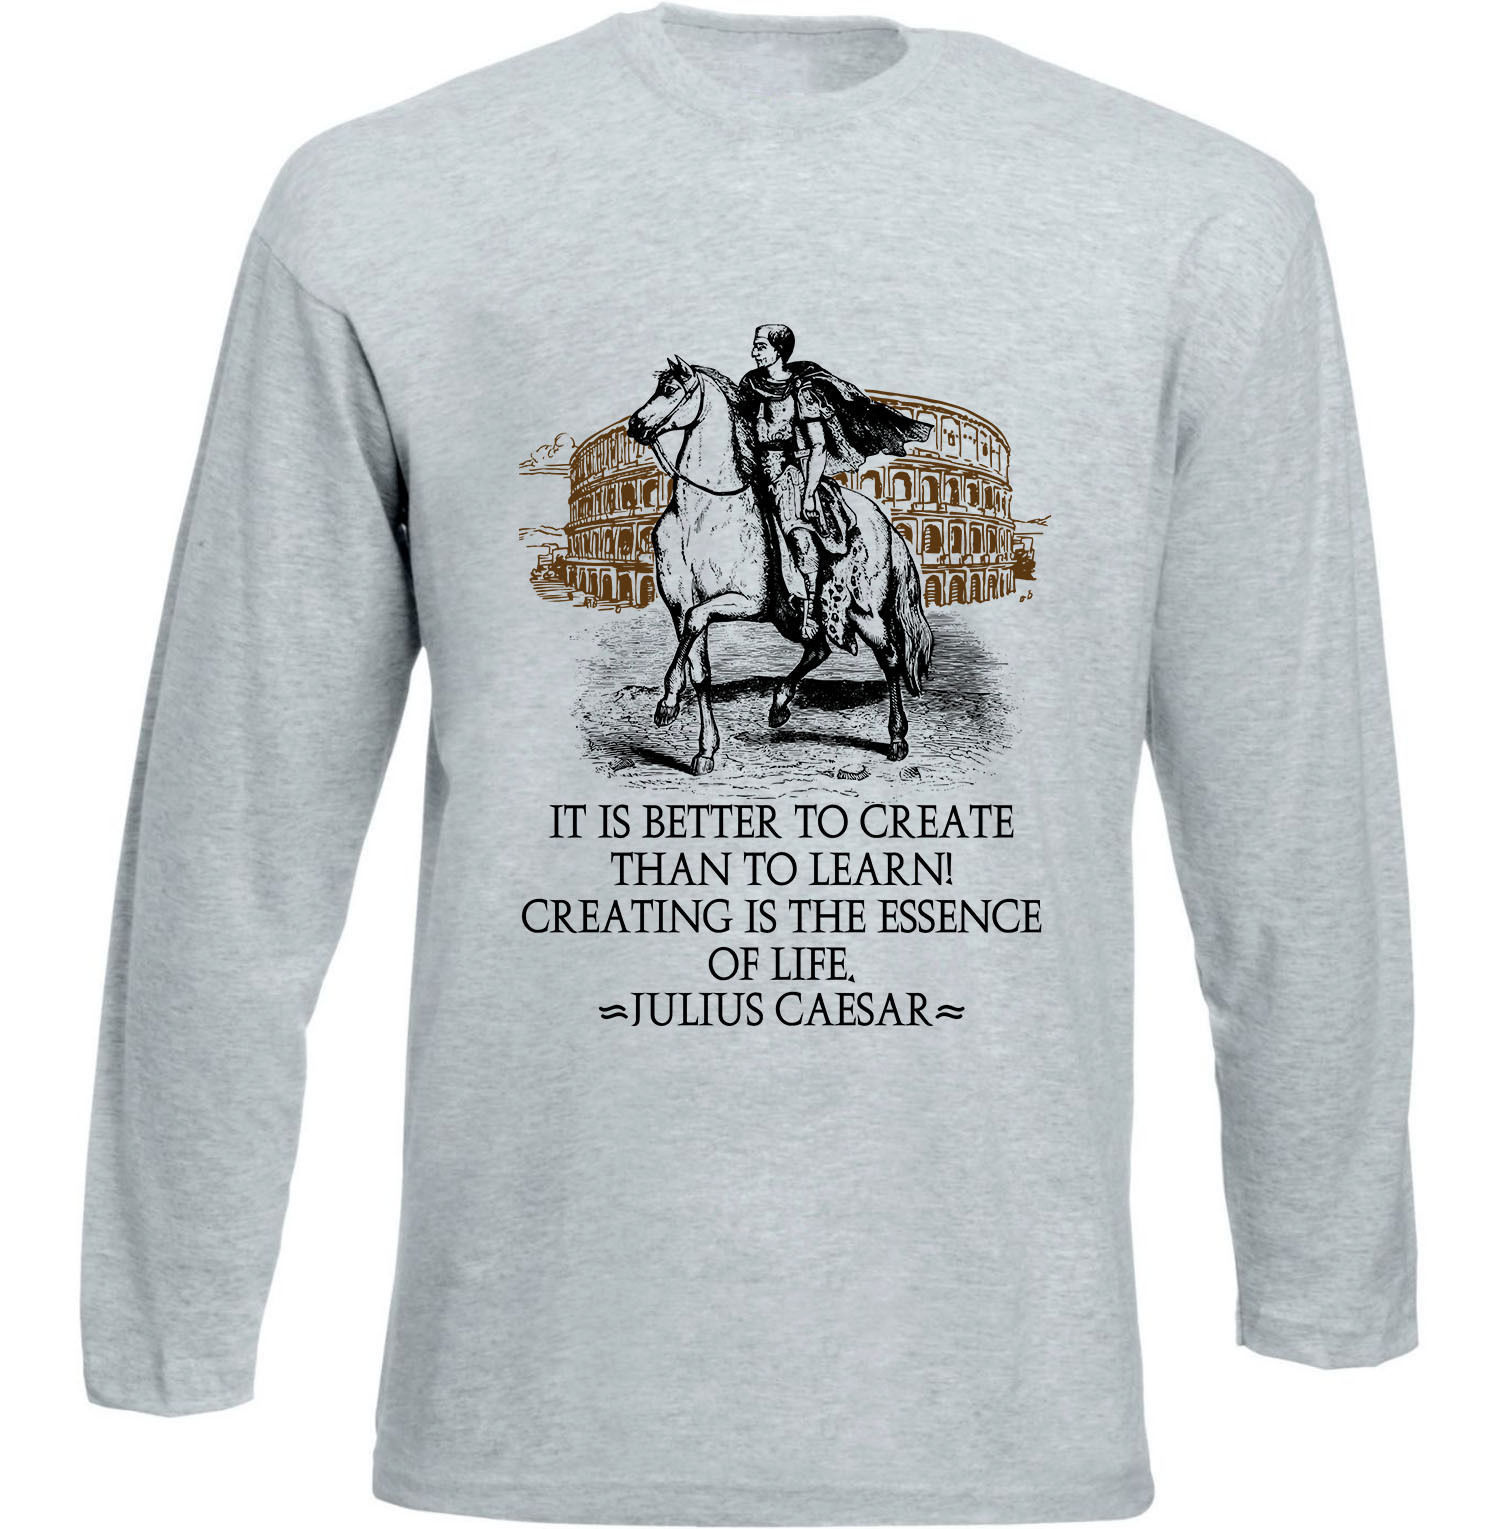 JULIUS CAESAR IT IS BETTER - NEW COTTON GREY TSHIRT